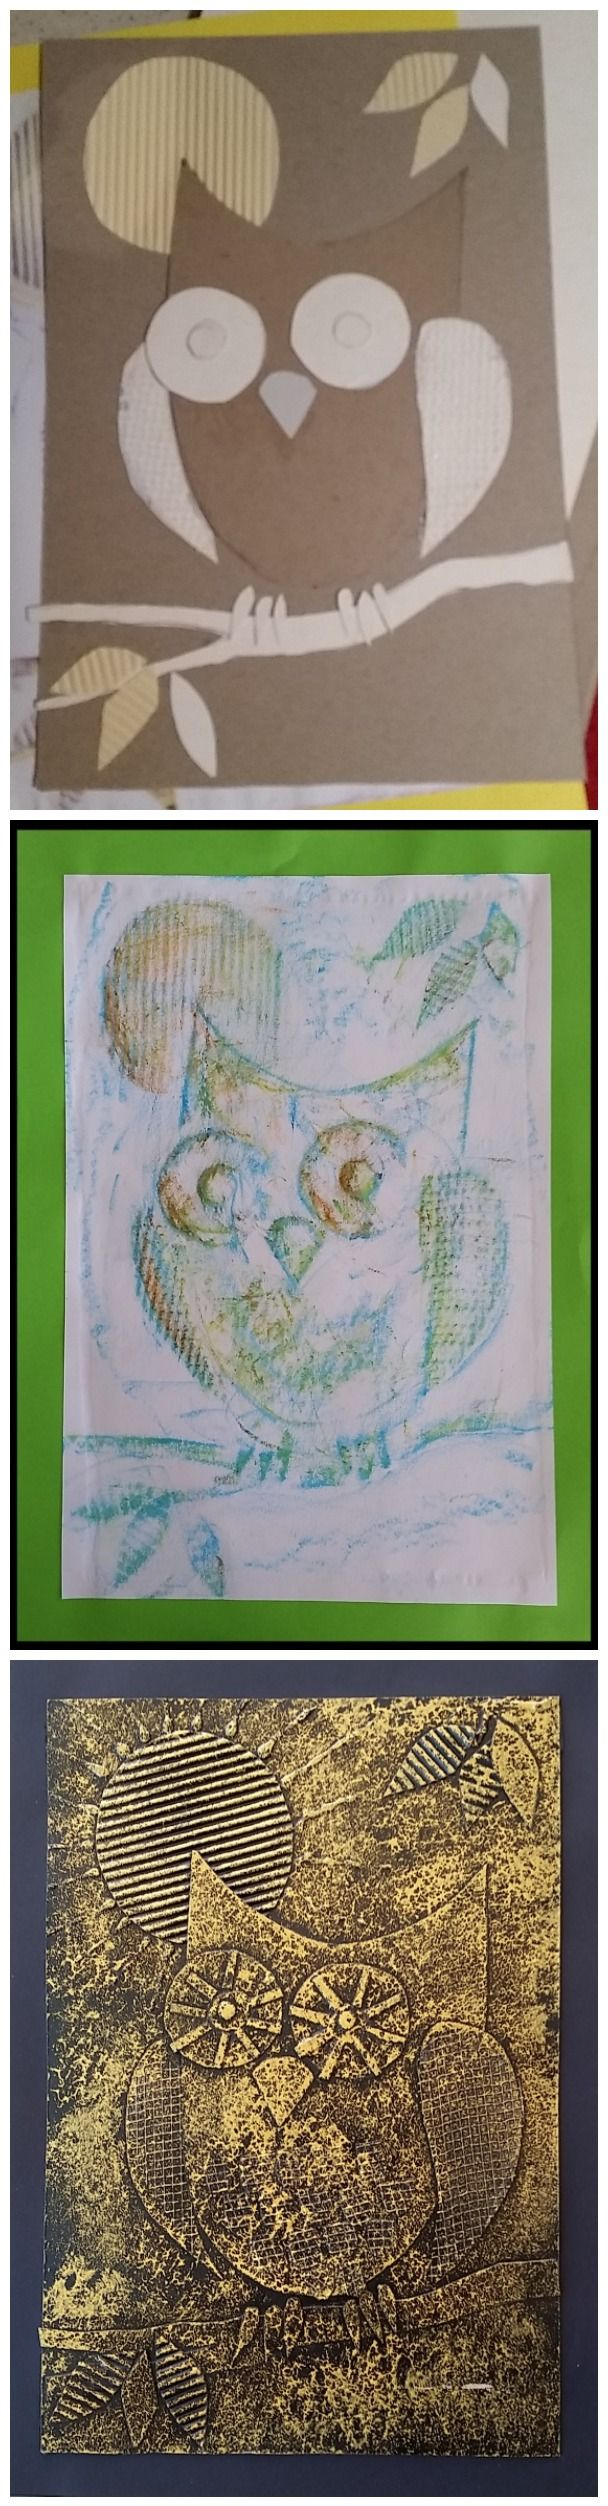 August 2014: Low-relief owls, oil pastel rubbings and faux-embossed metal finish.